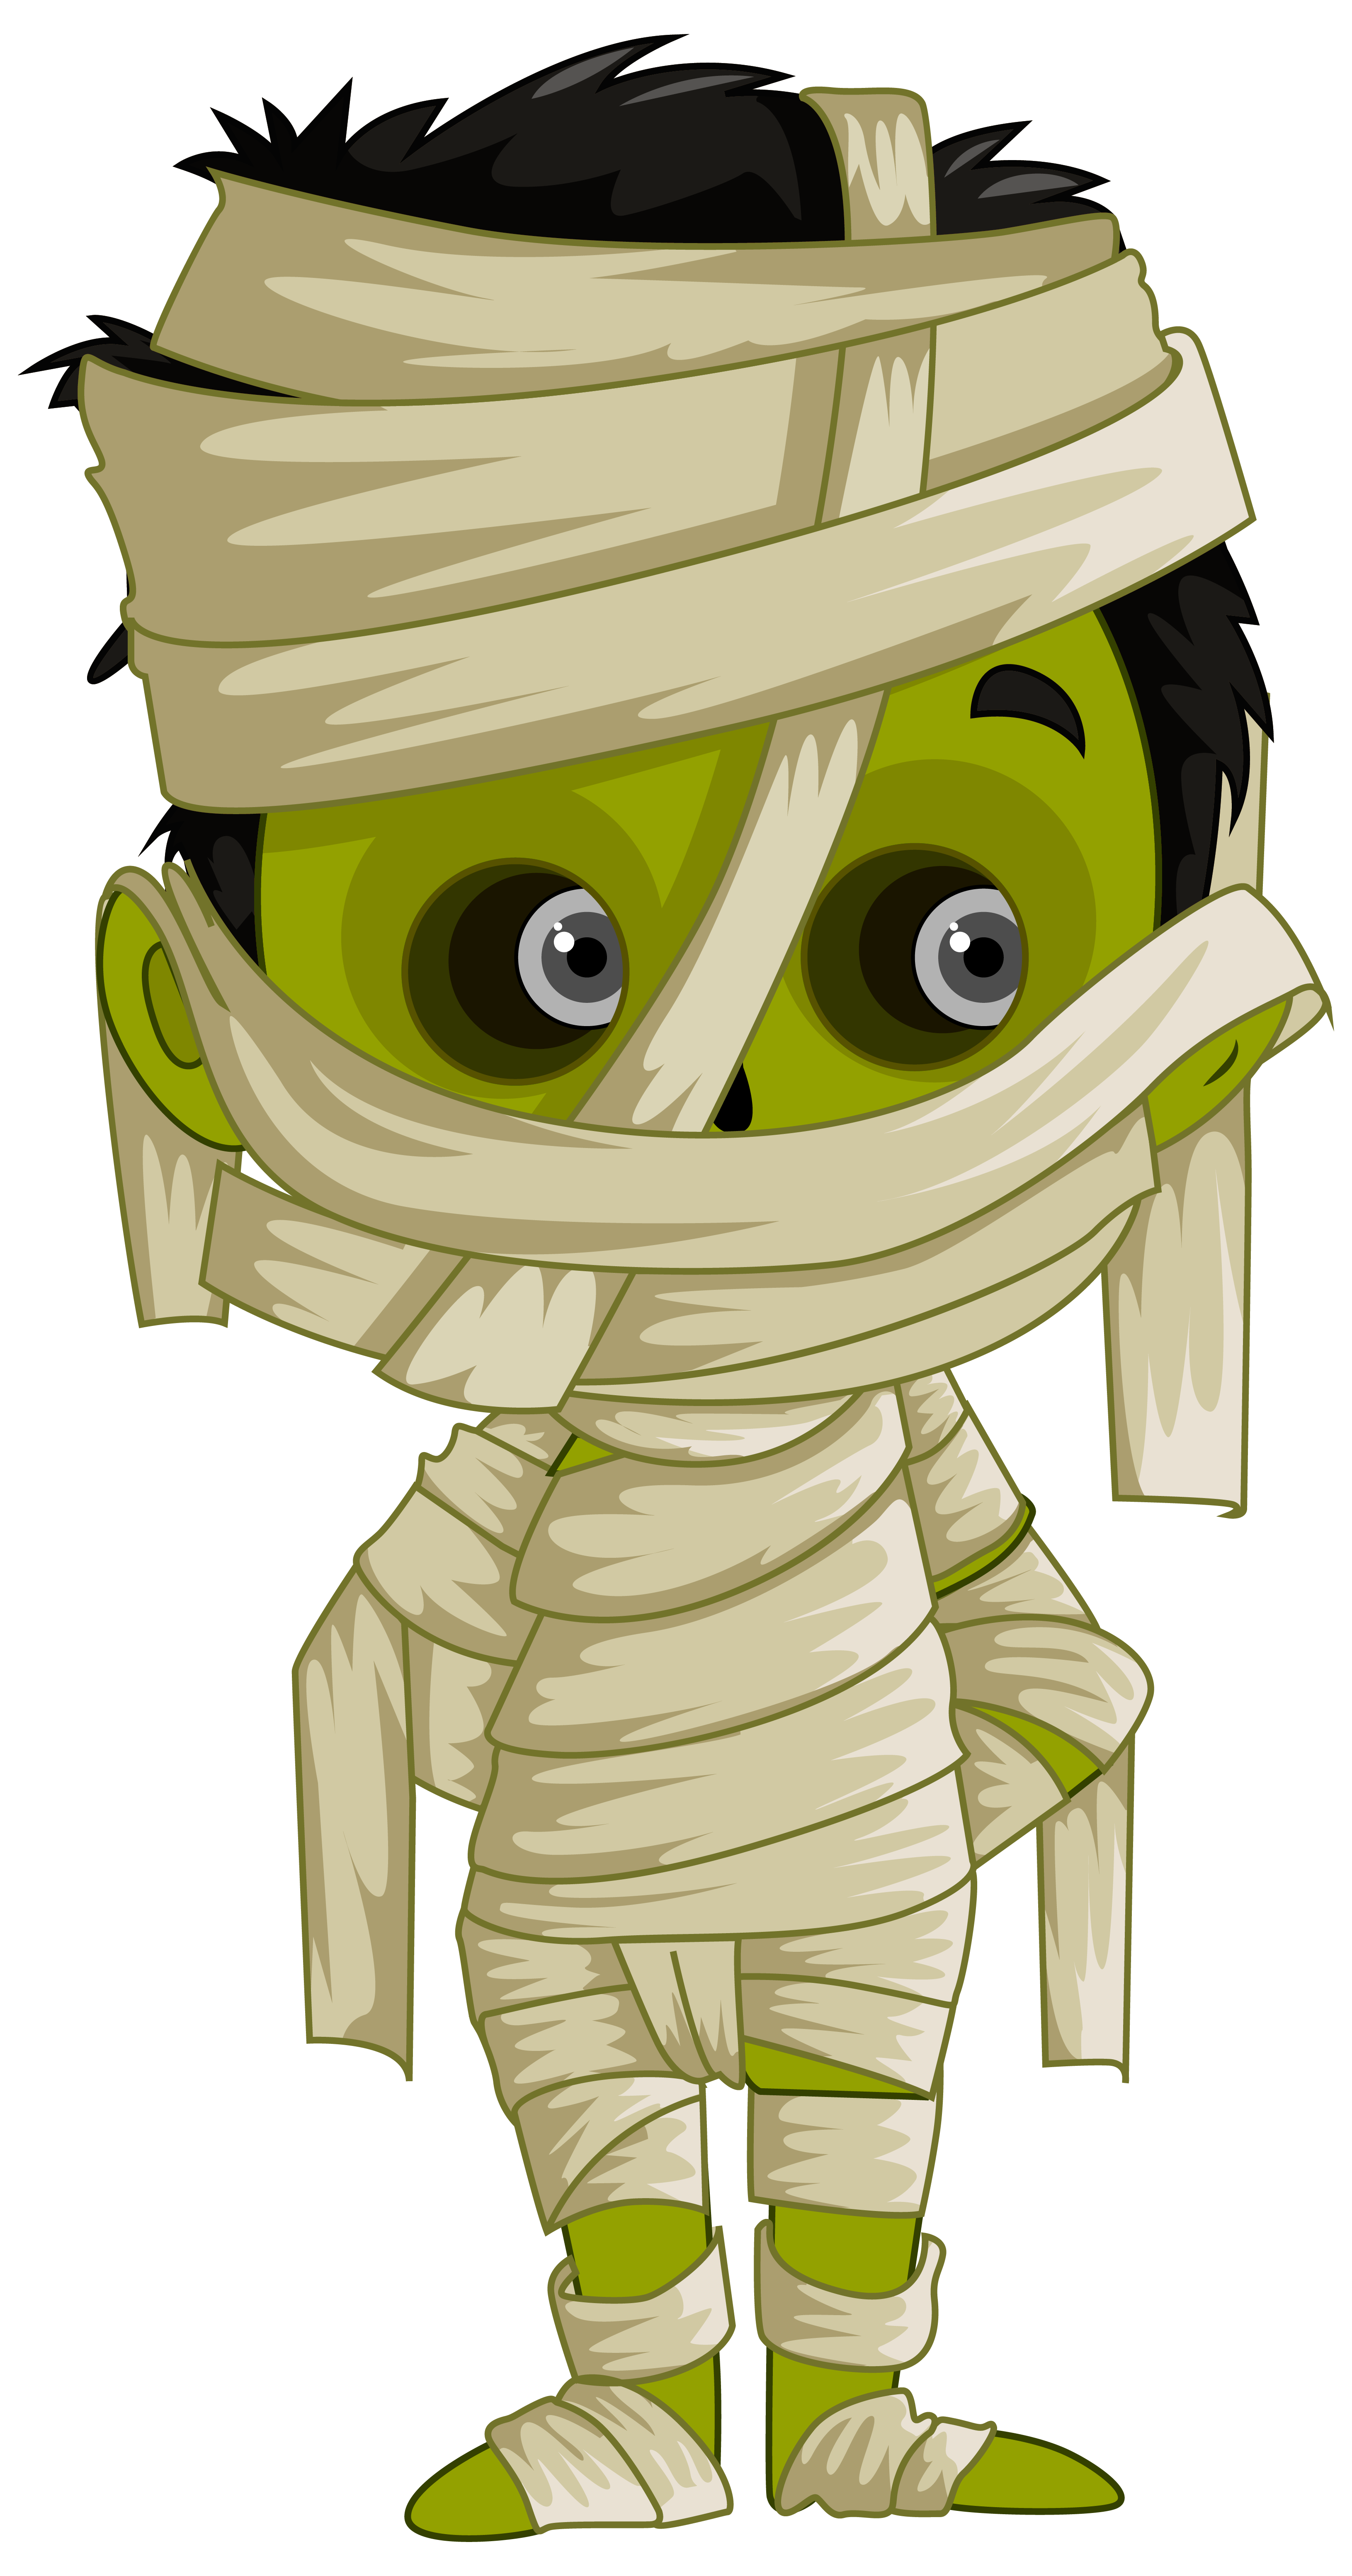 svg download Png image gallery yopriceville. Mummy clipart